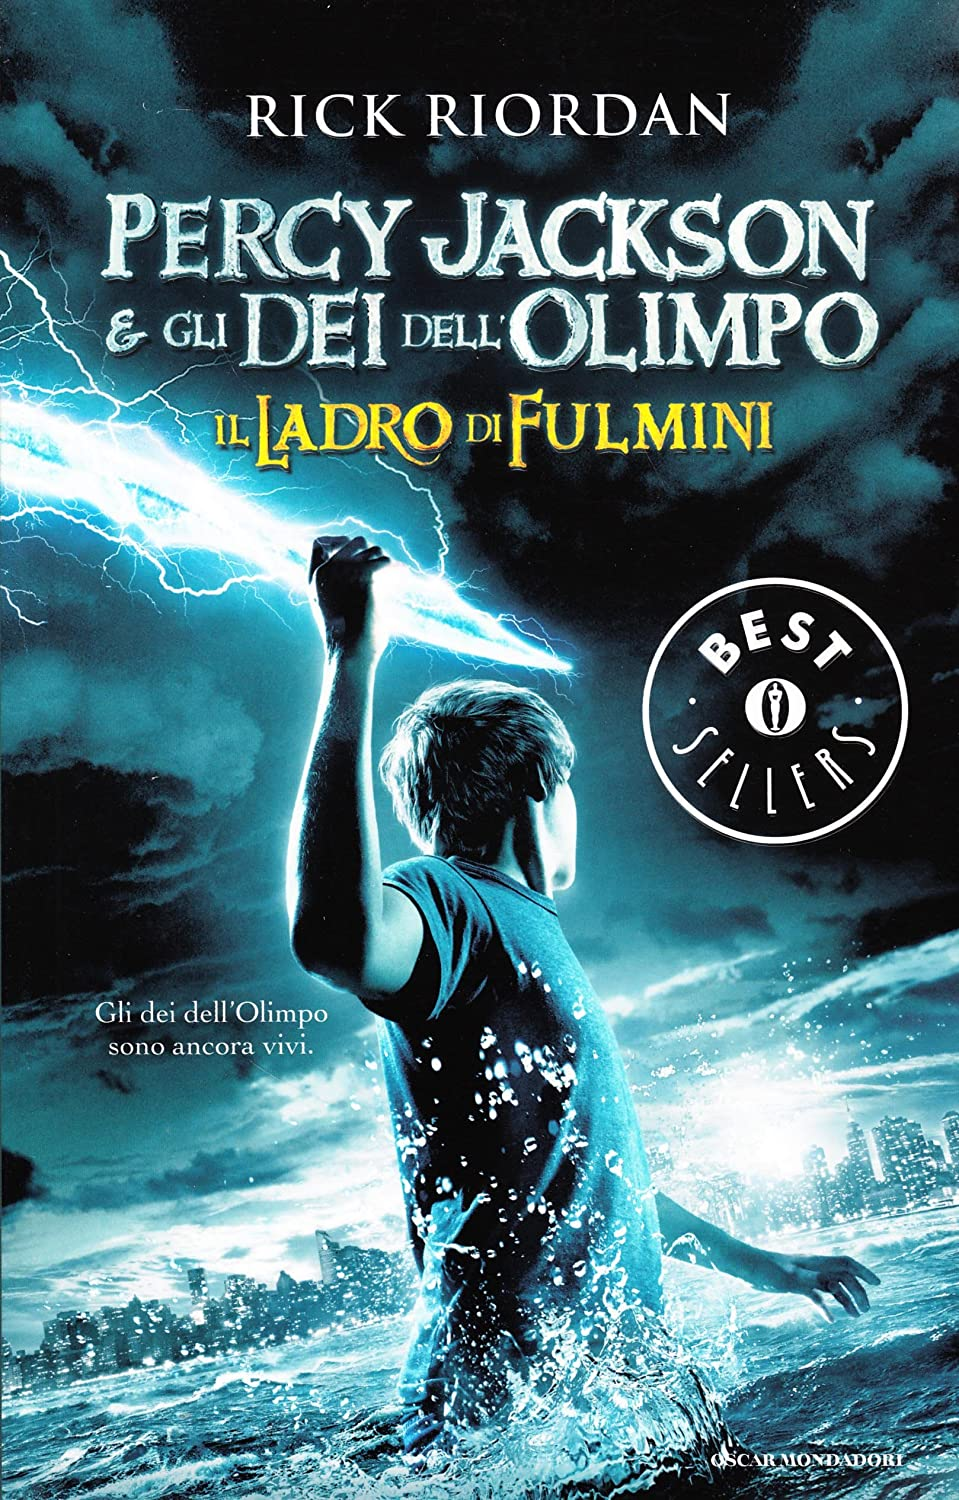 http://www.amazon.it/PERCY-JACKSON-GLI-DEI-DELLOLIMPO/dp/8804610379/ref=tmm_pap_title_0?ie=UTF8&qid=1435738826&sr=1-1